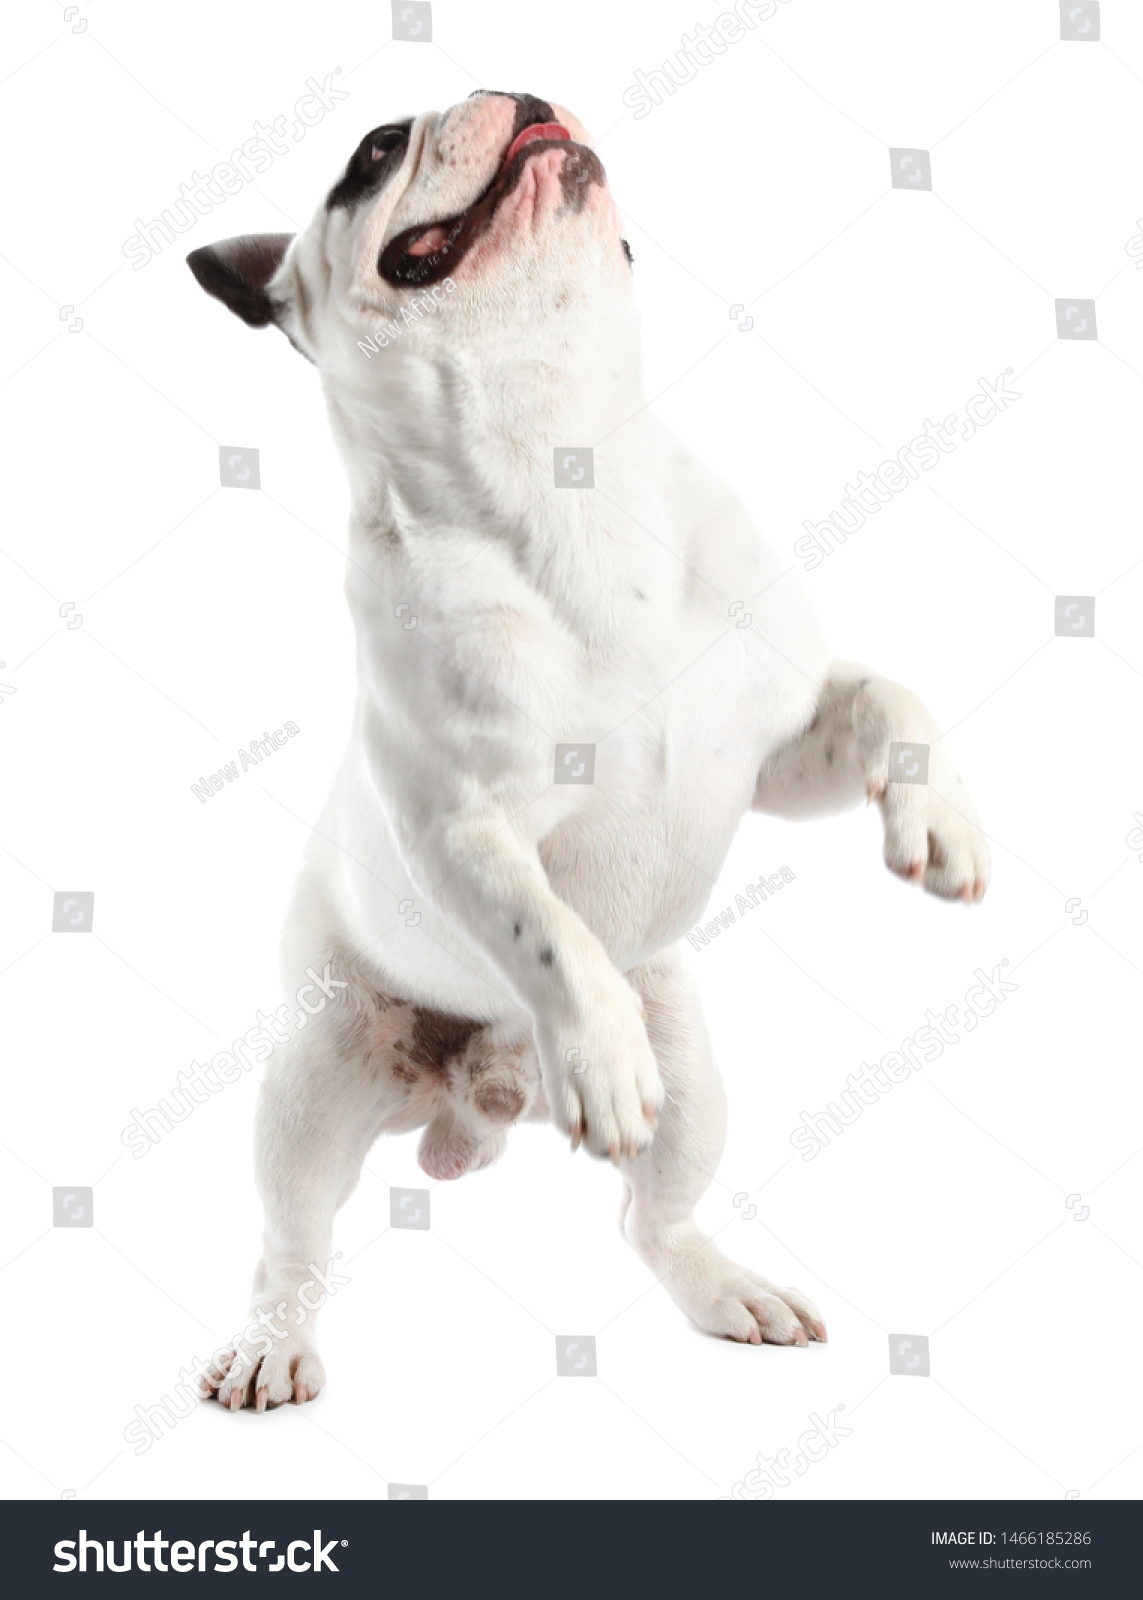 French bulldog on white background. Adorable pet #1466185286